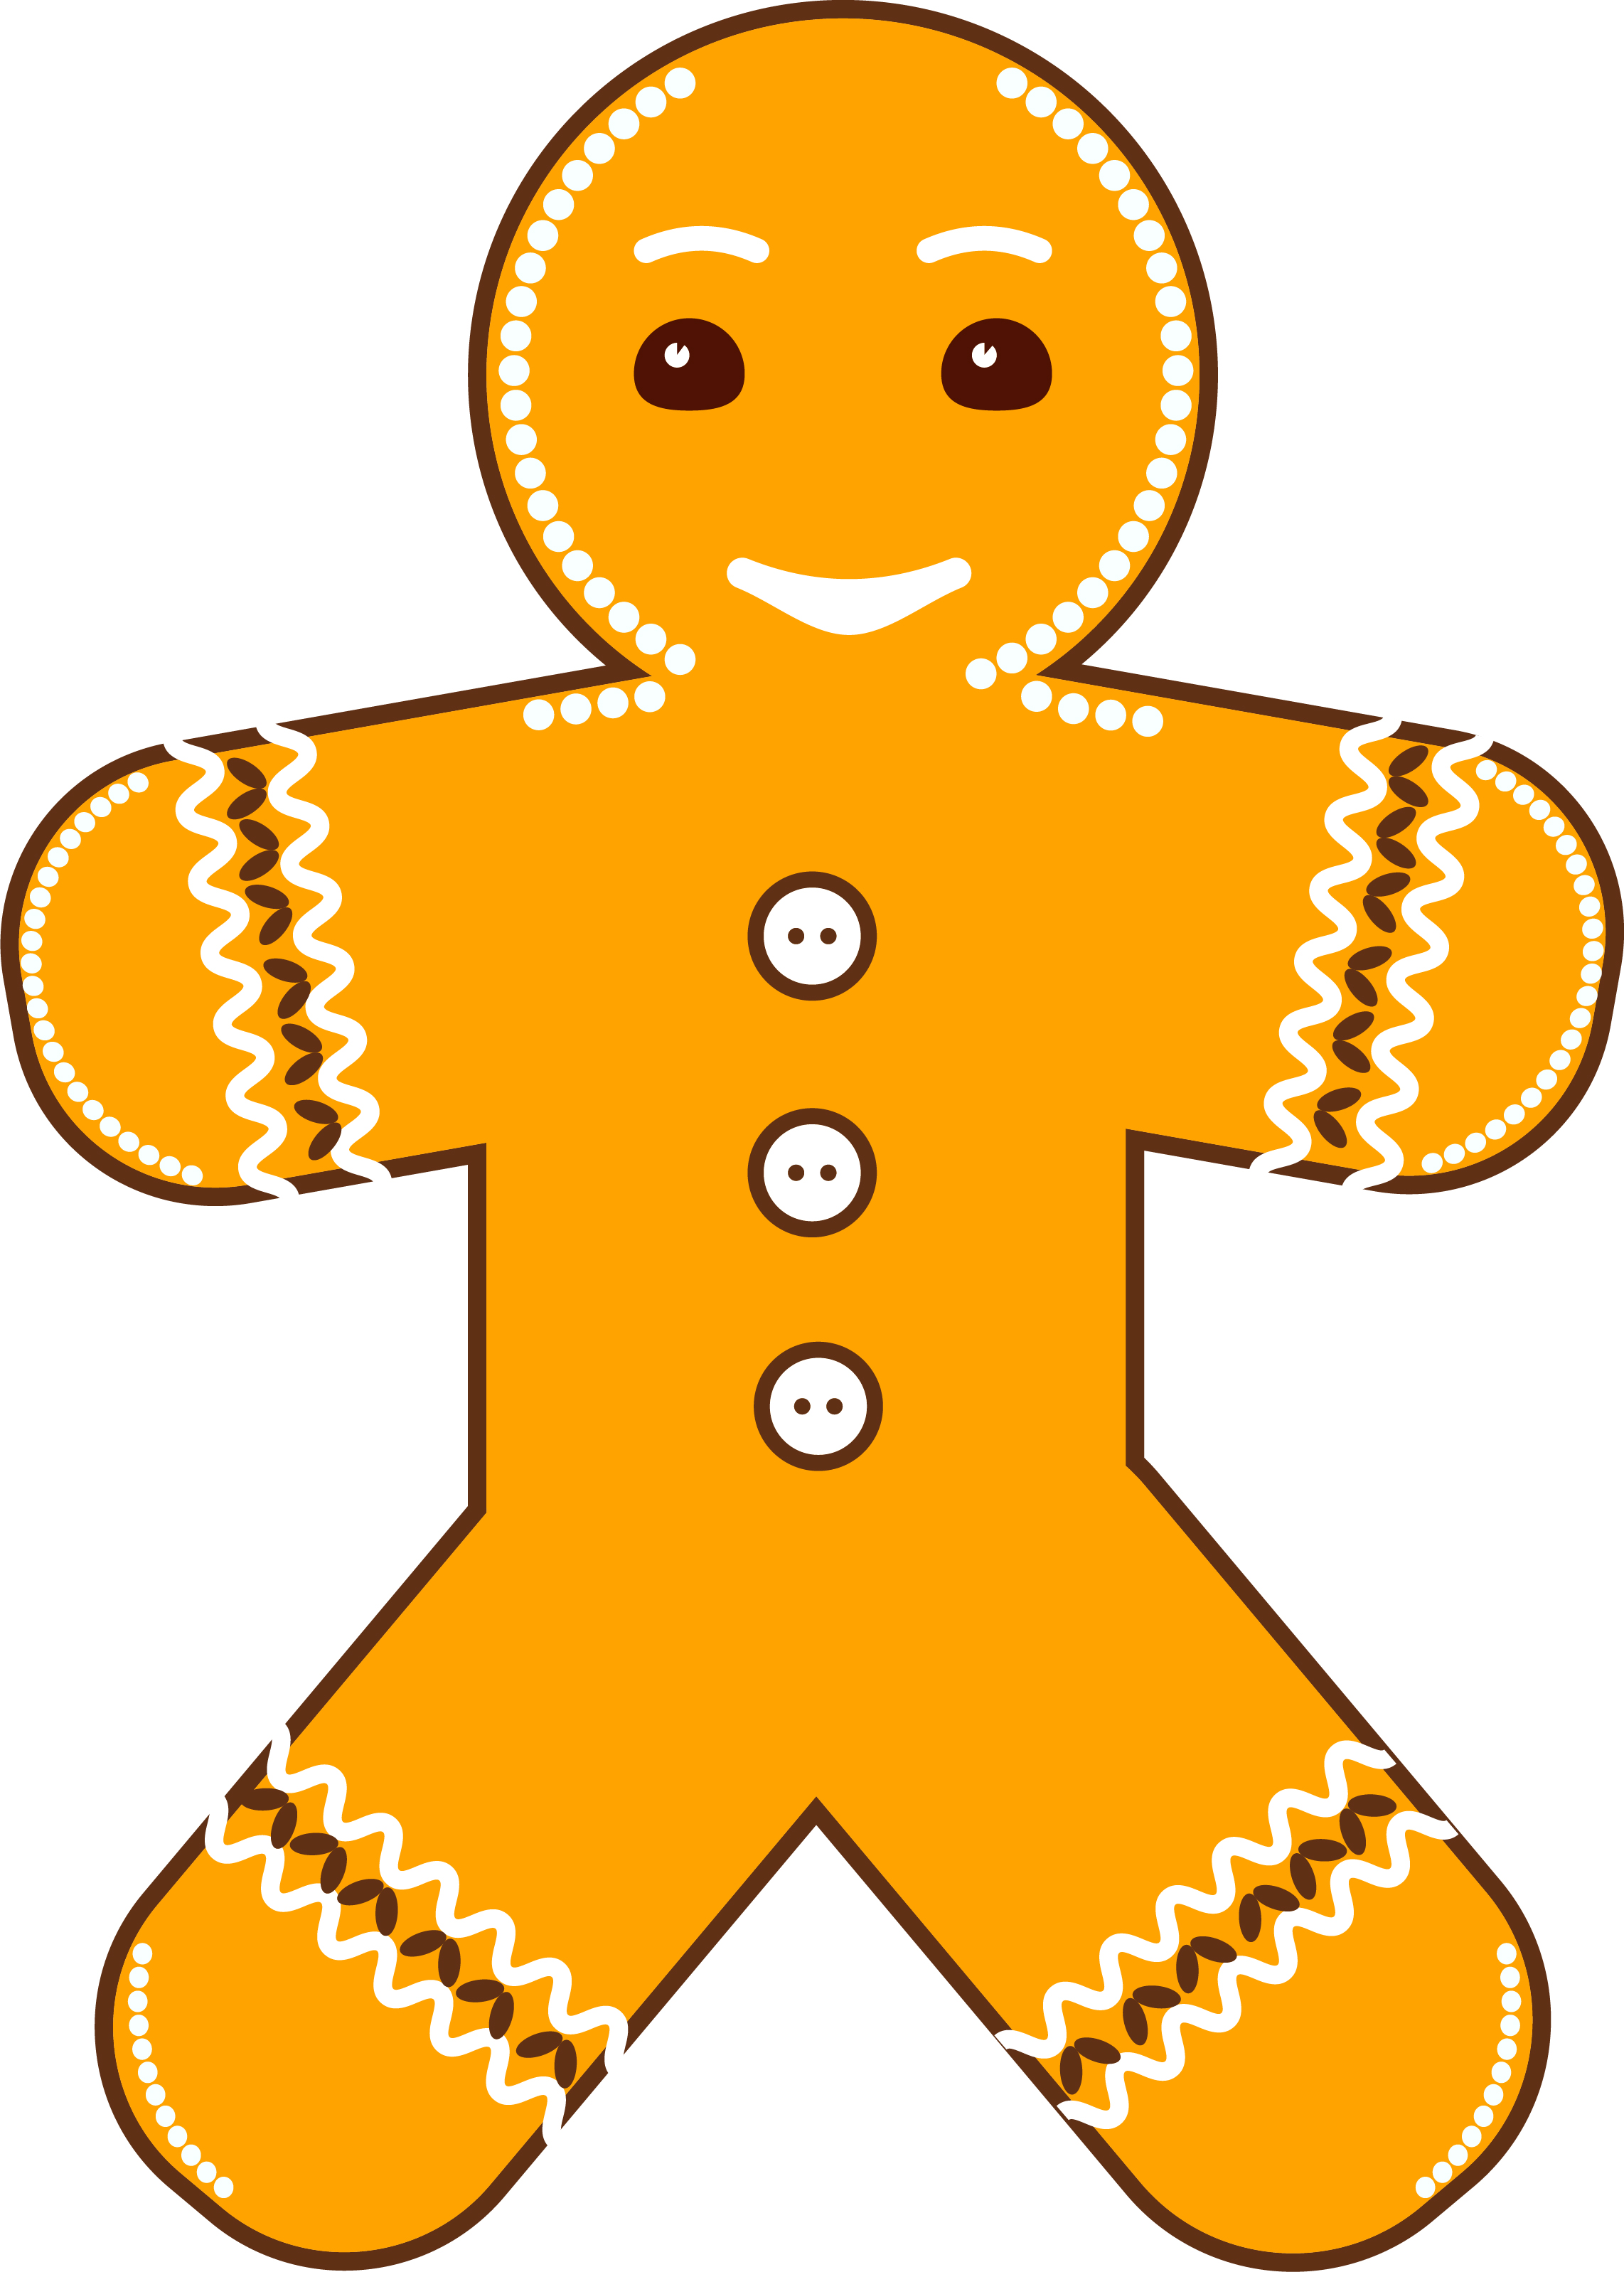 New Year Gingerbread Man example image 4